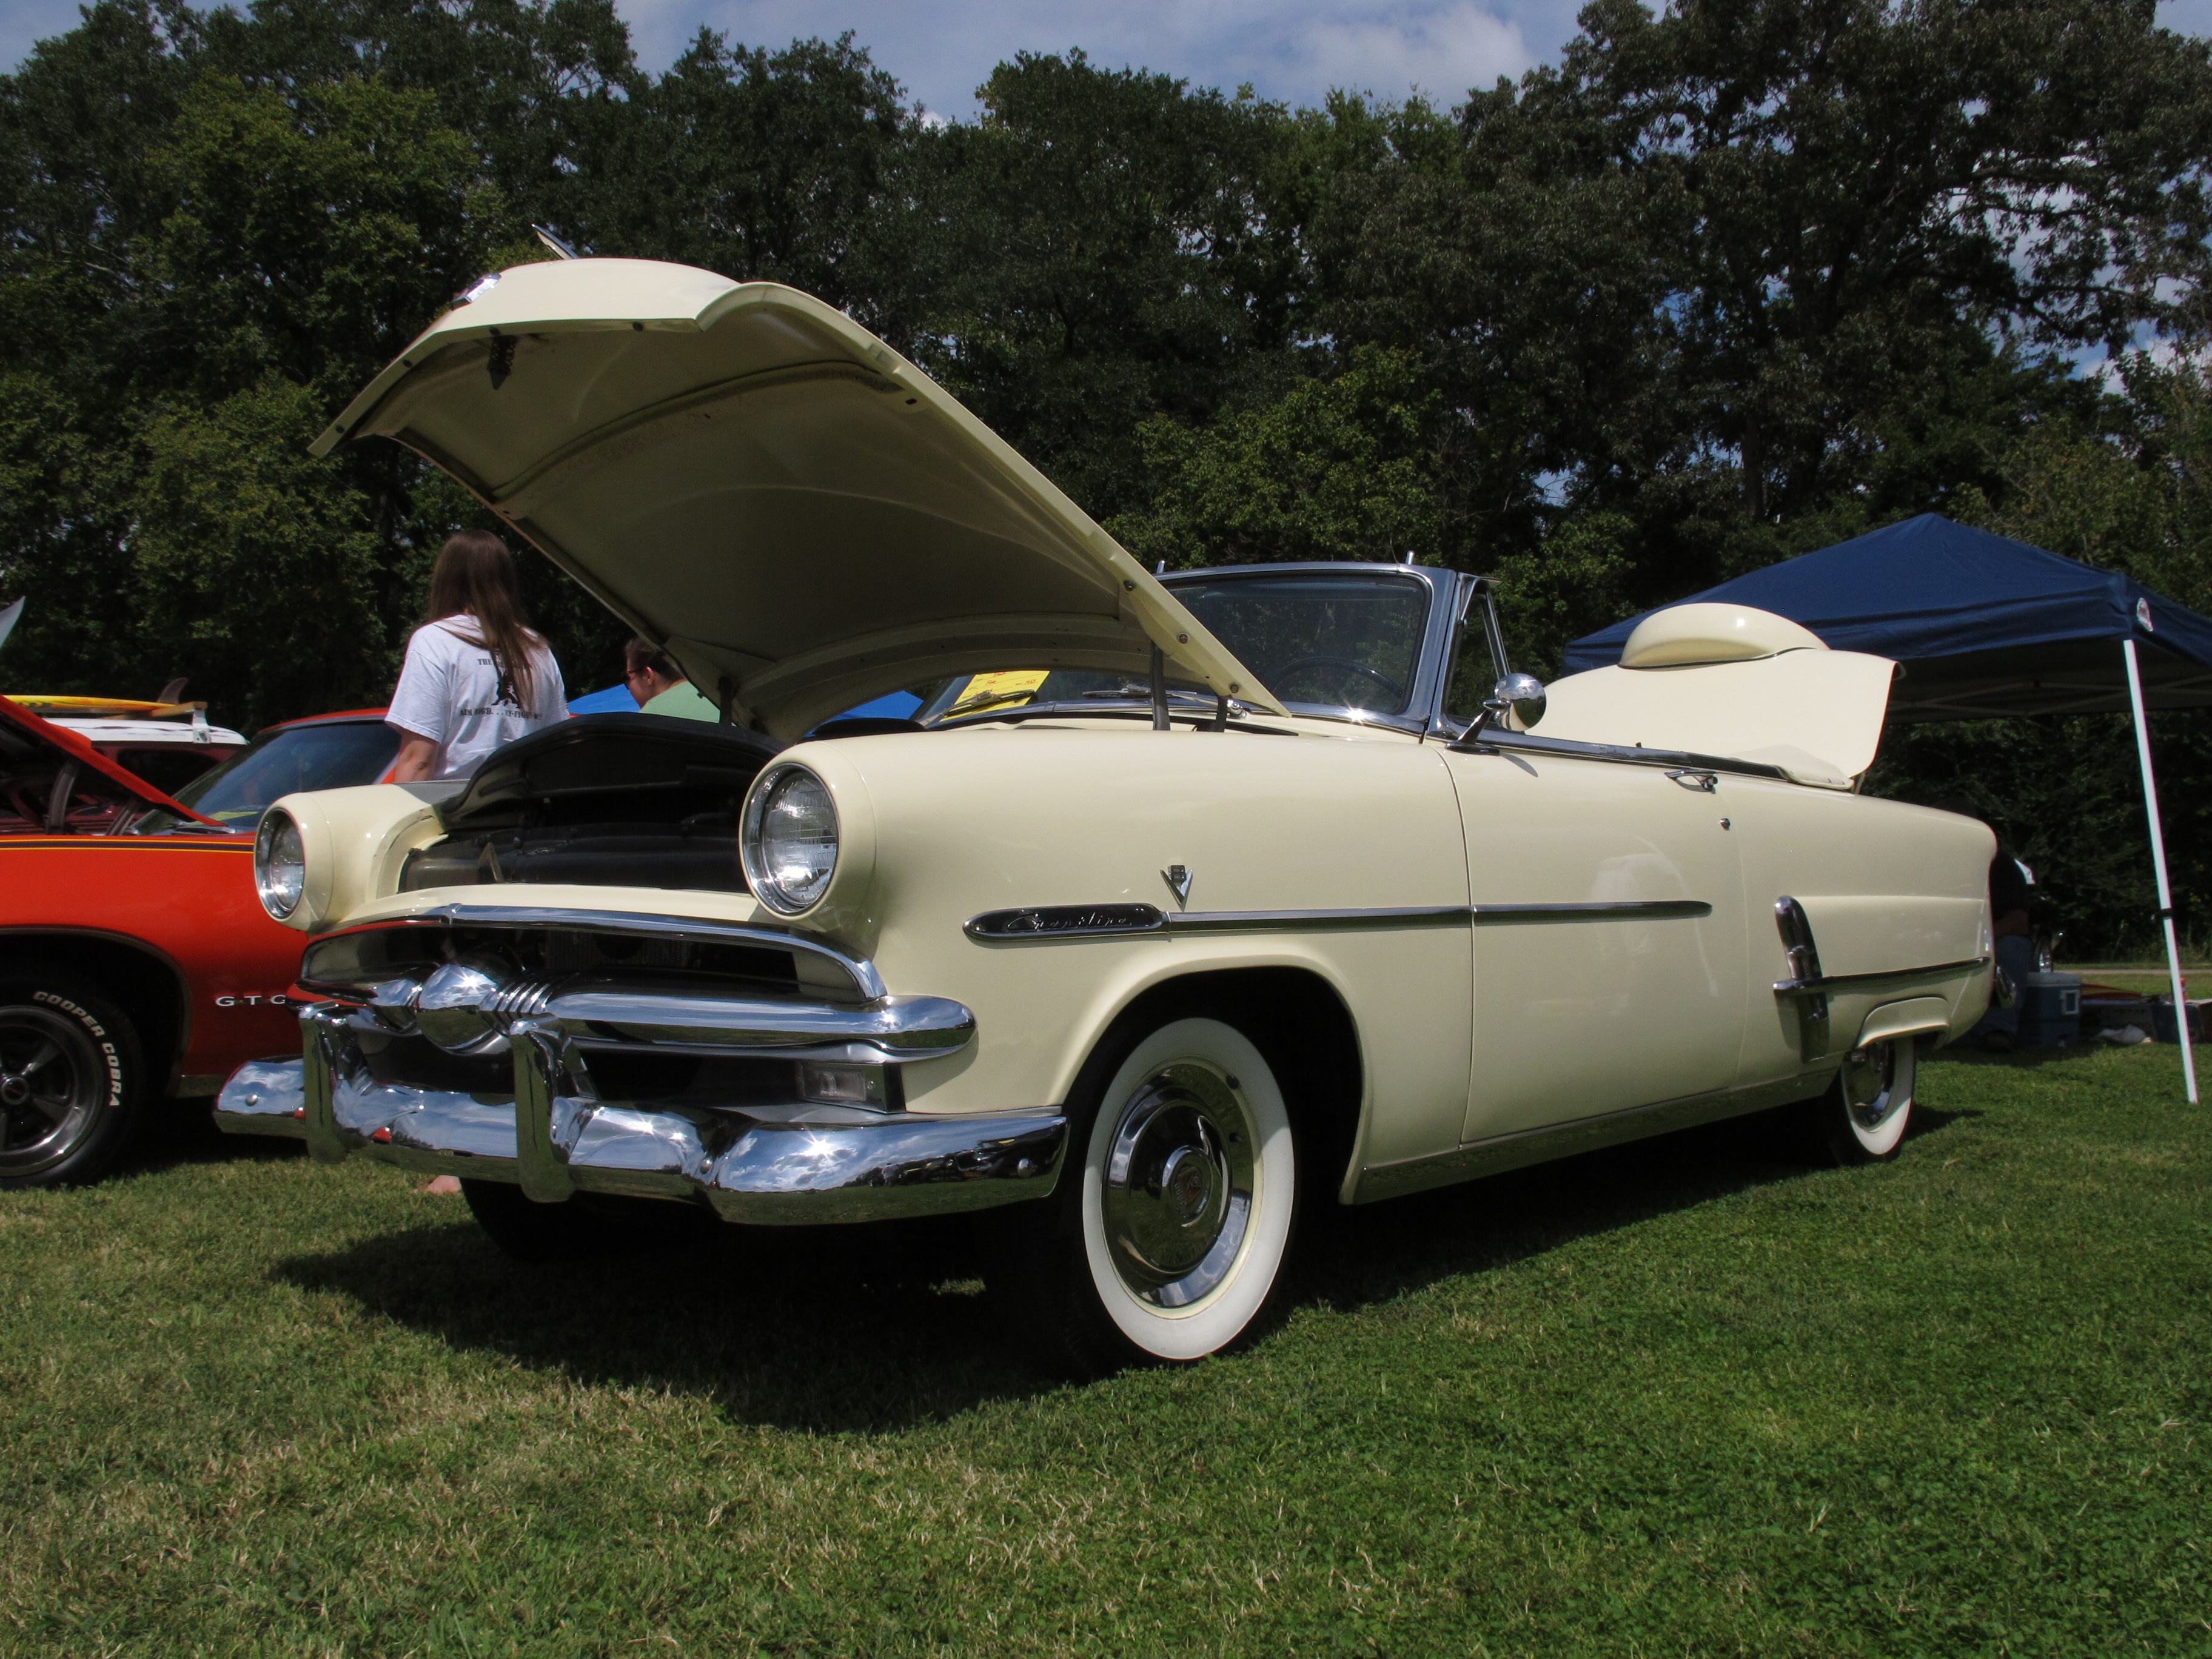 Cars By The Creek 2012 – Montevallo, Alabama | Coats Classic Cars Blog